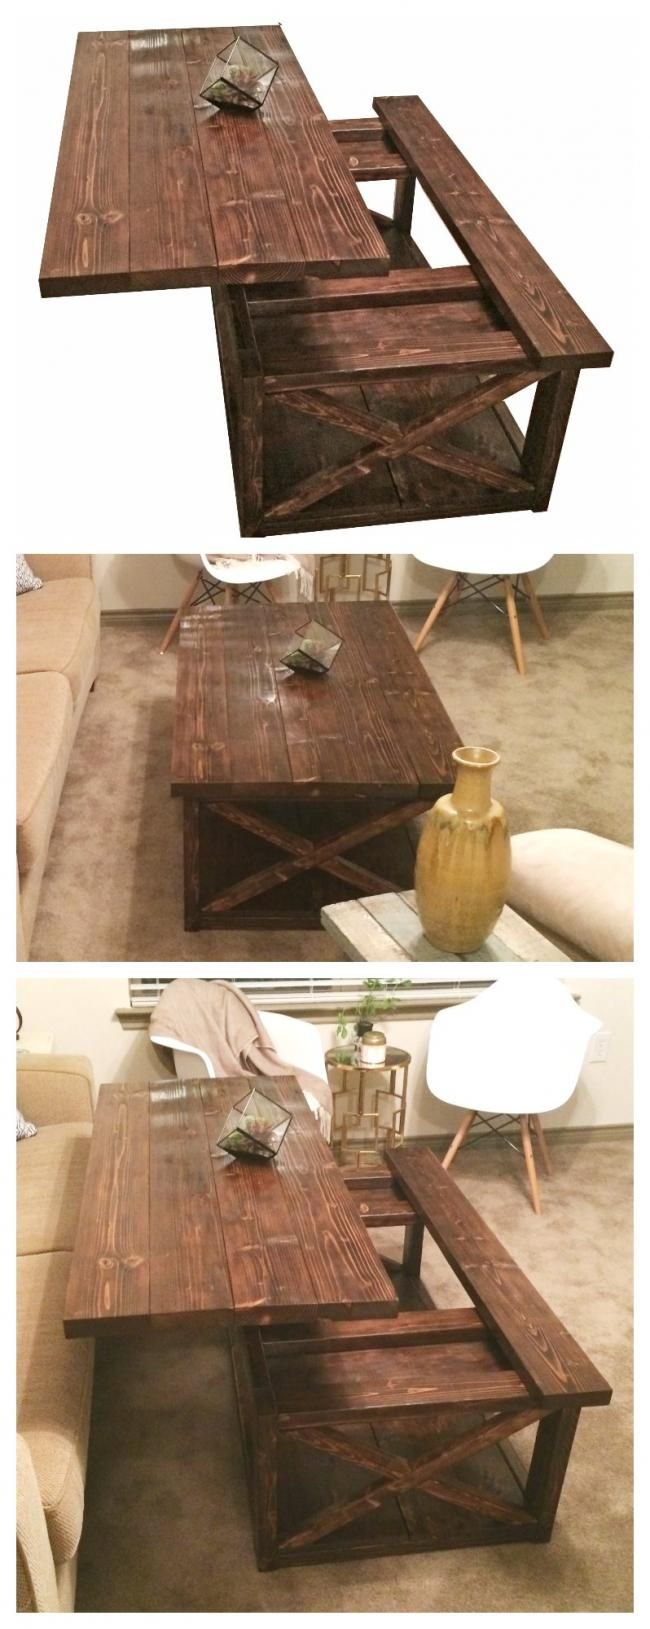 Table success do it yourself home projects from ana white diy 85 - Diy Lift Top Coffee Table Rustic X Style Do It Yourself Home Projects From